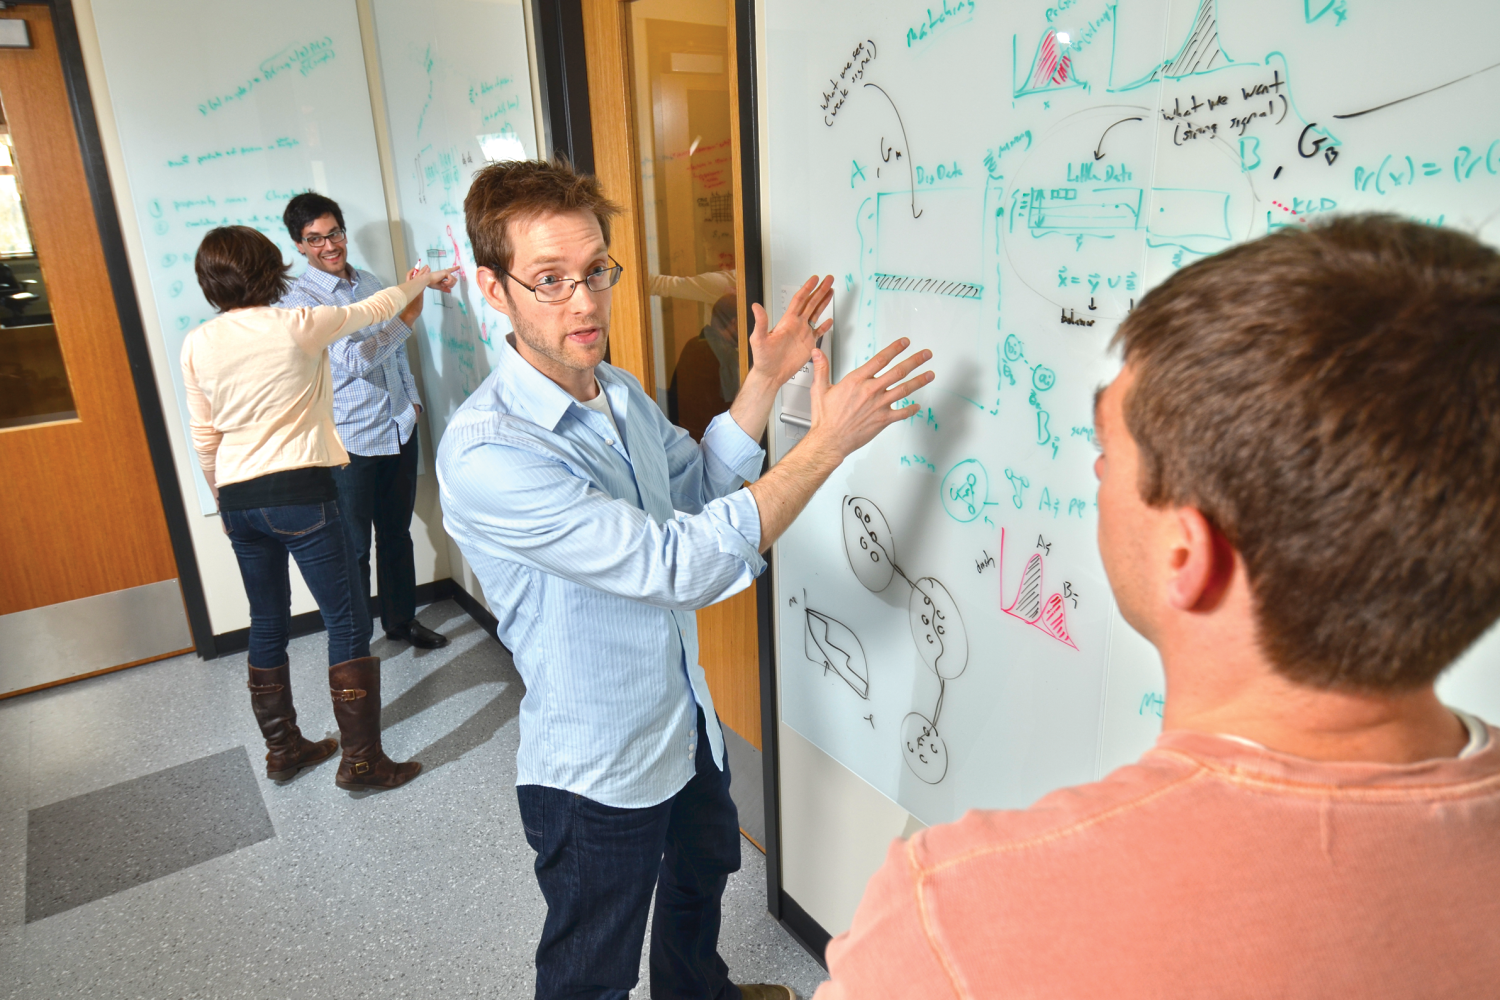 Assistant Professor Aaron Clauset and a student discuss an equation at a whiteboard.